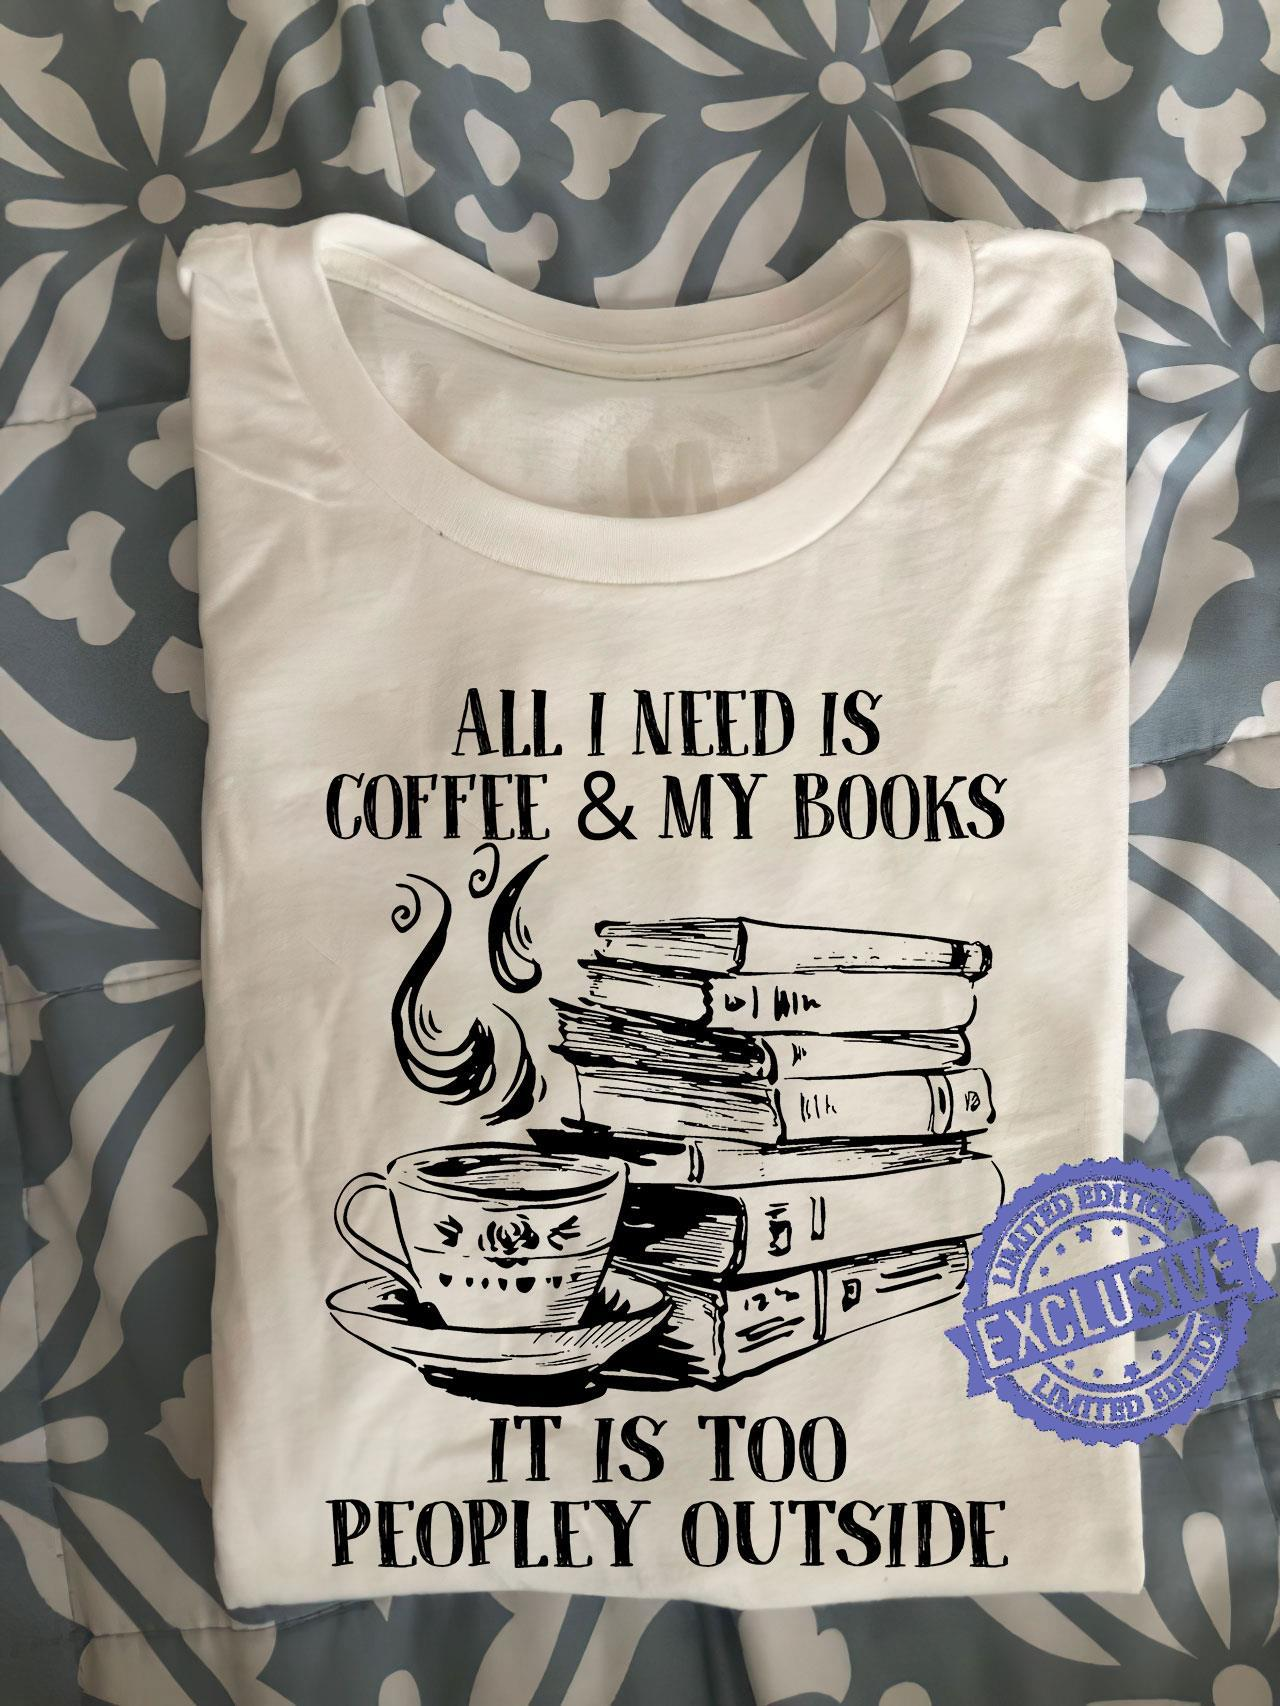 All i need is coffee my books it is too peopley outside shirt